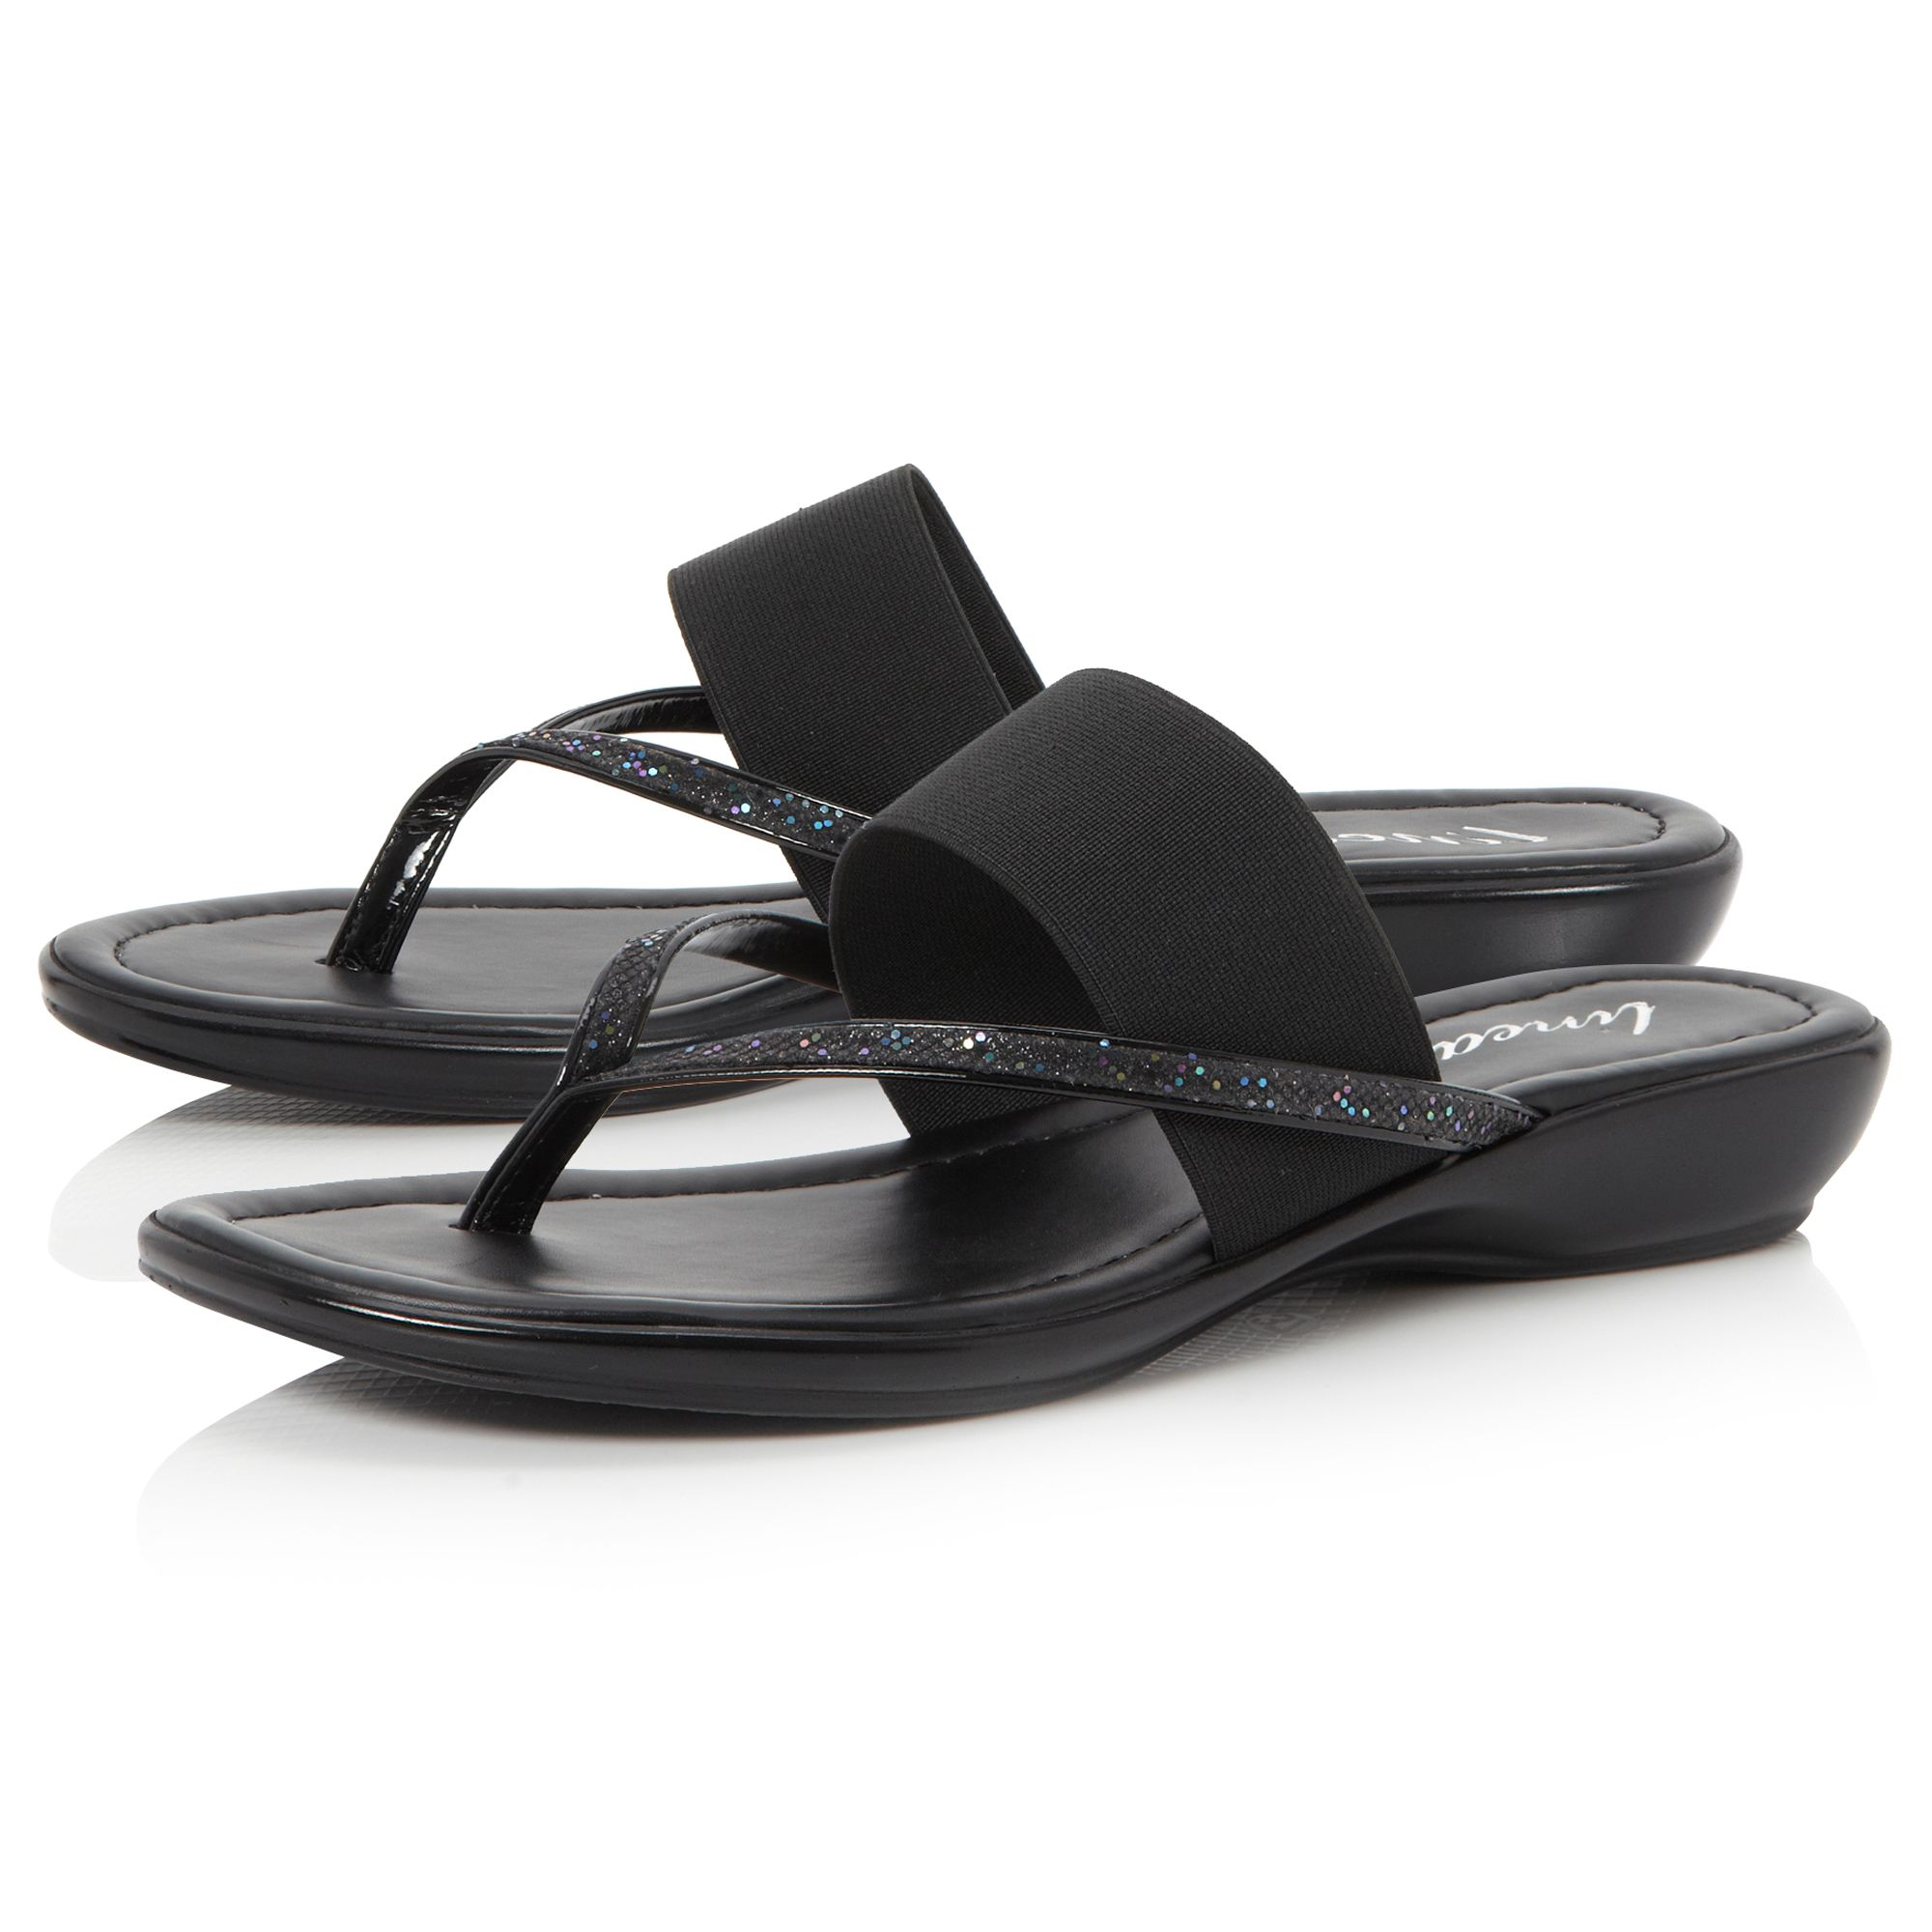 Johnstown elastic flat sandals